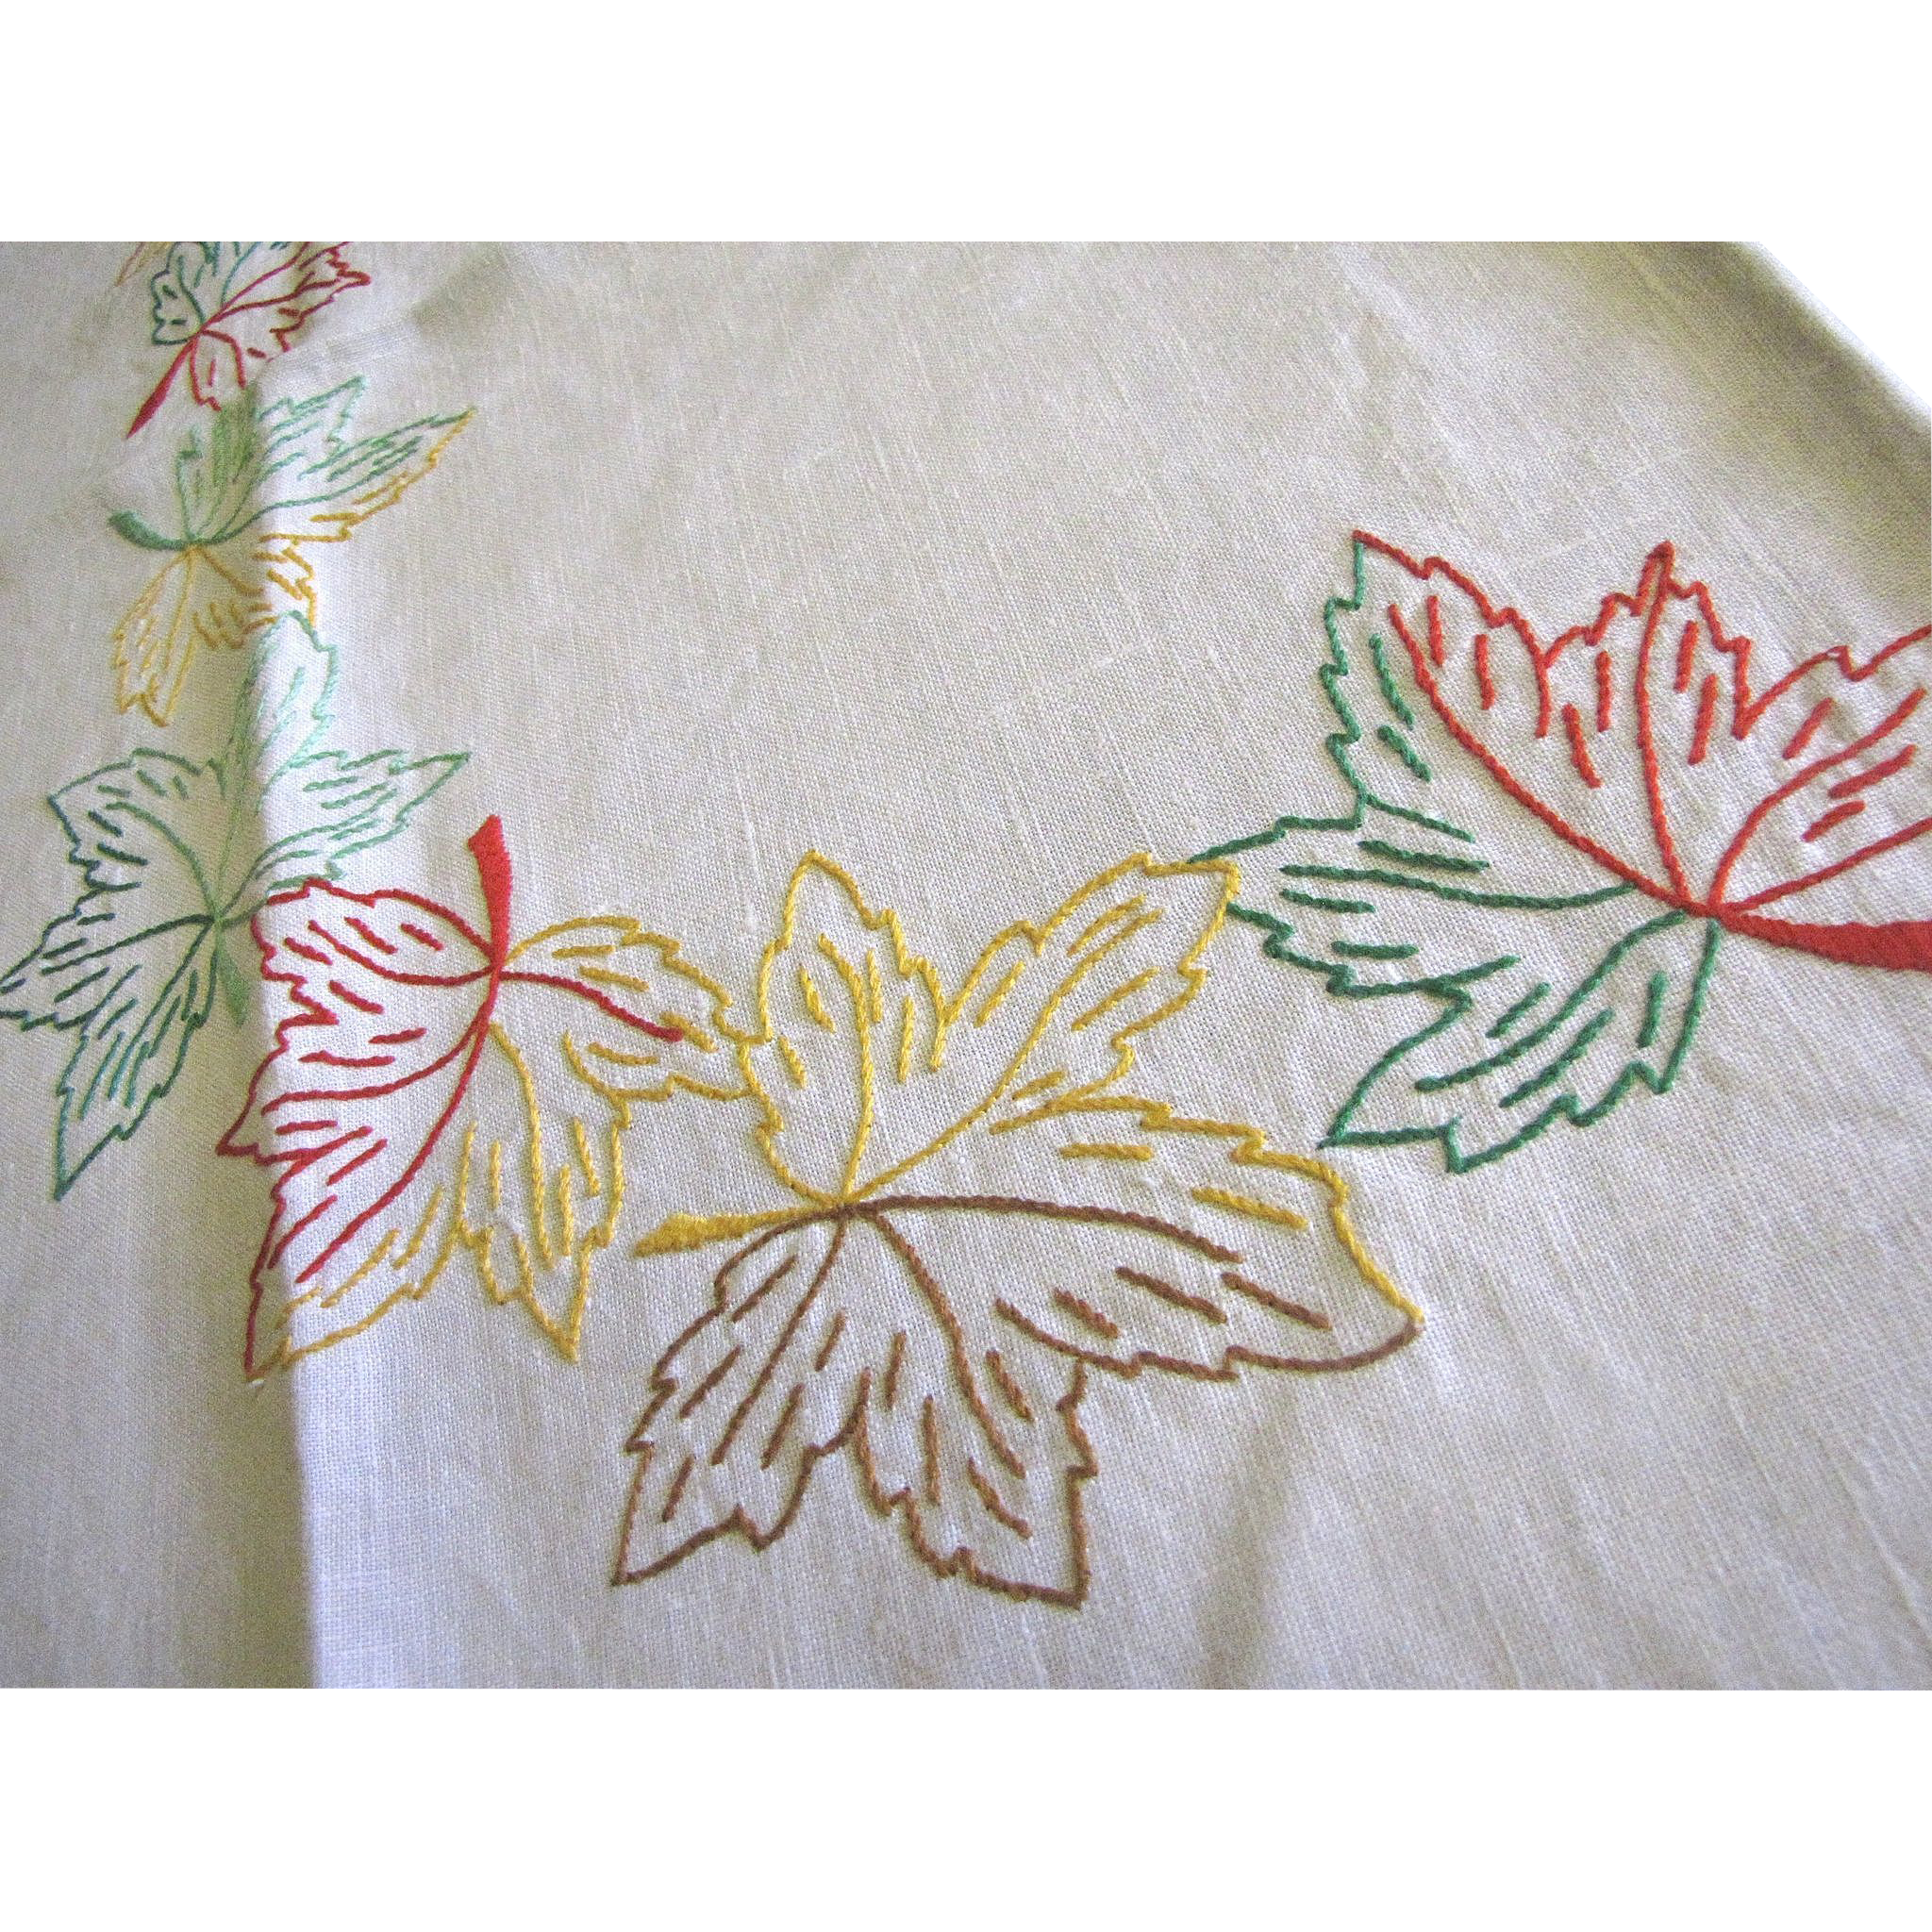 Lovely vintage hand embroidered leaf design tea or bridge